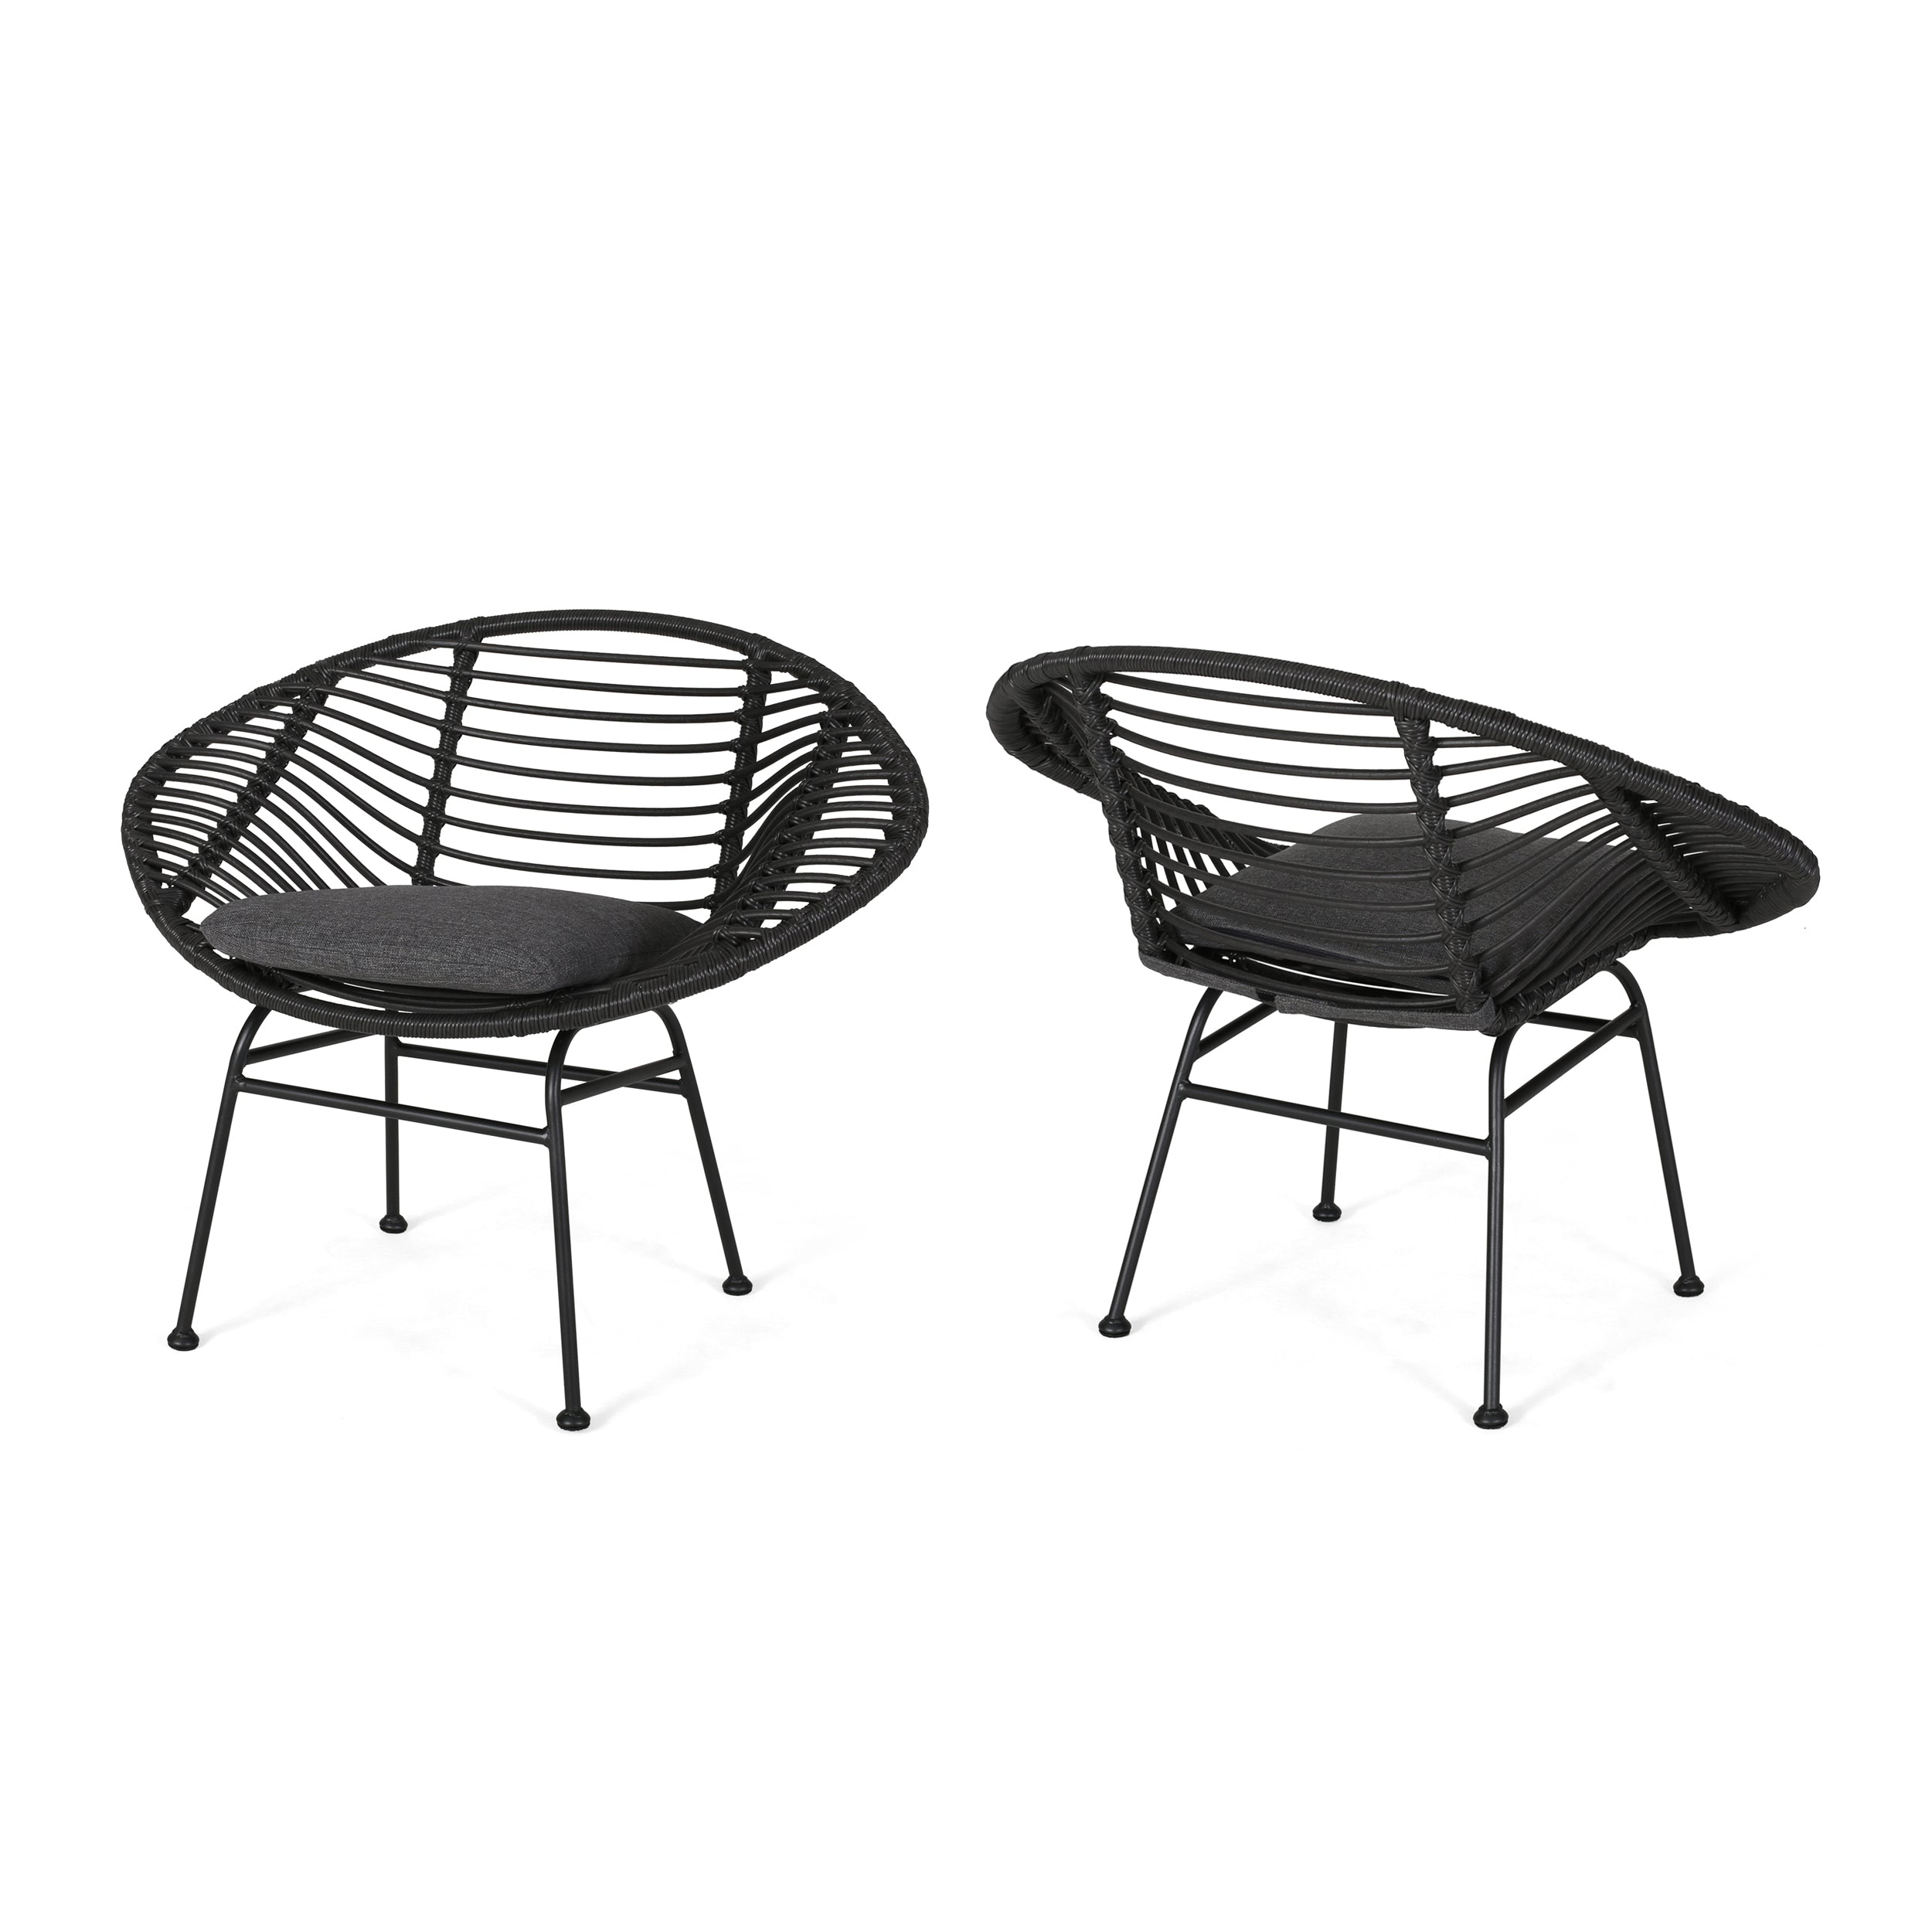 Aleah Outdoor Woven Faux Rattan Chairs with Cushions Set of 2 Gray Dark Gray